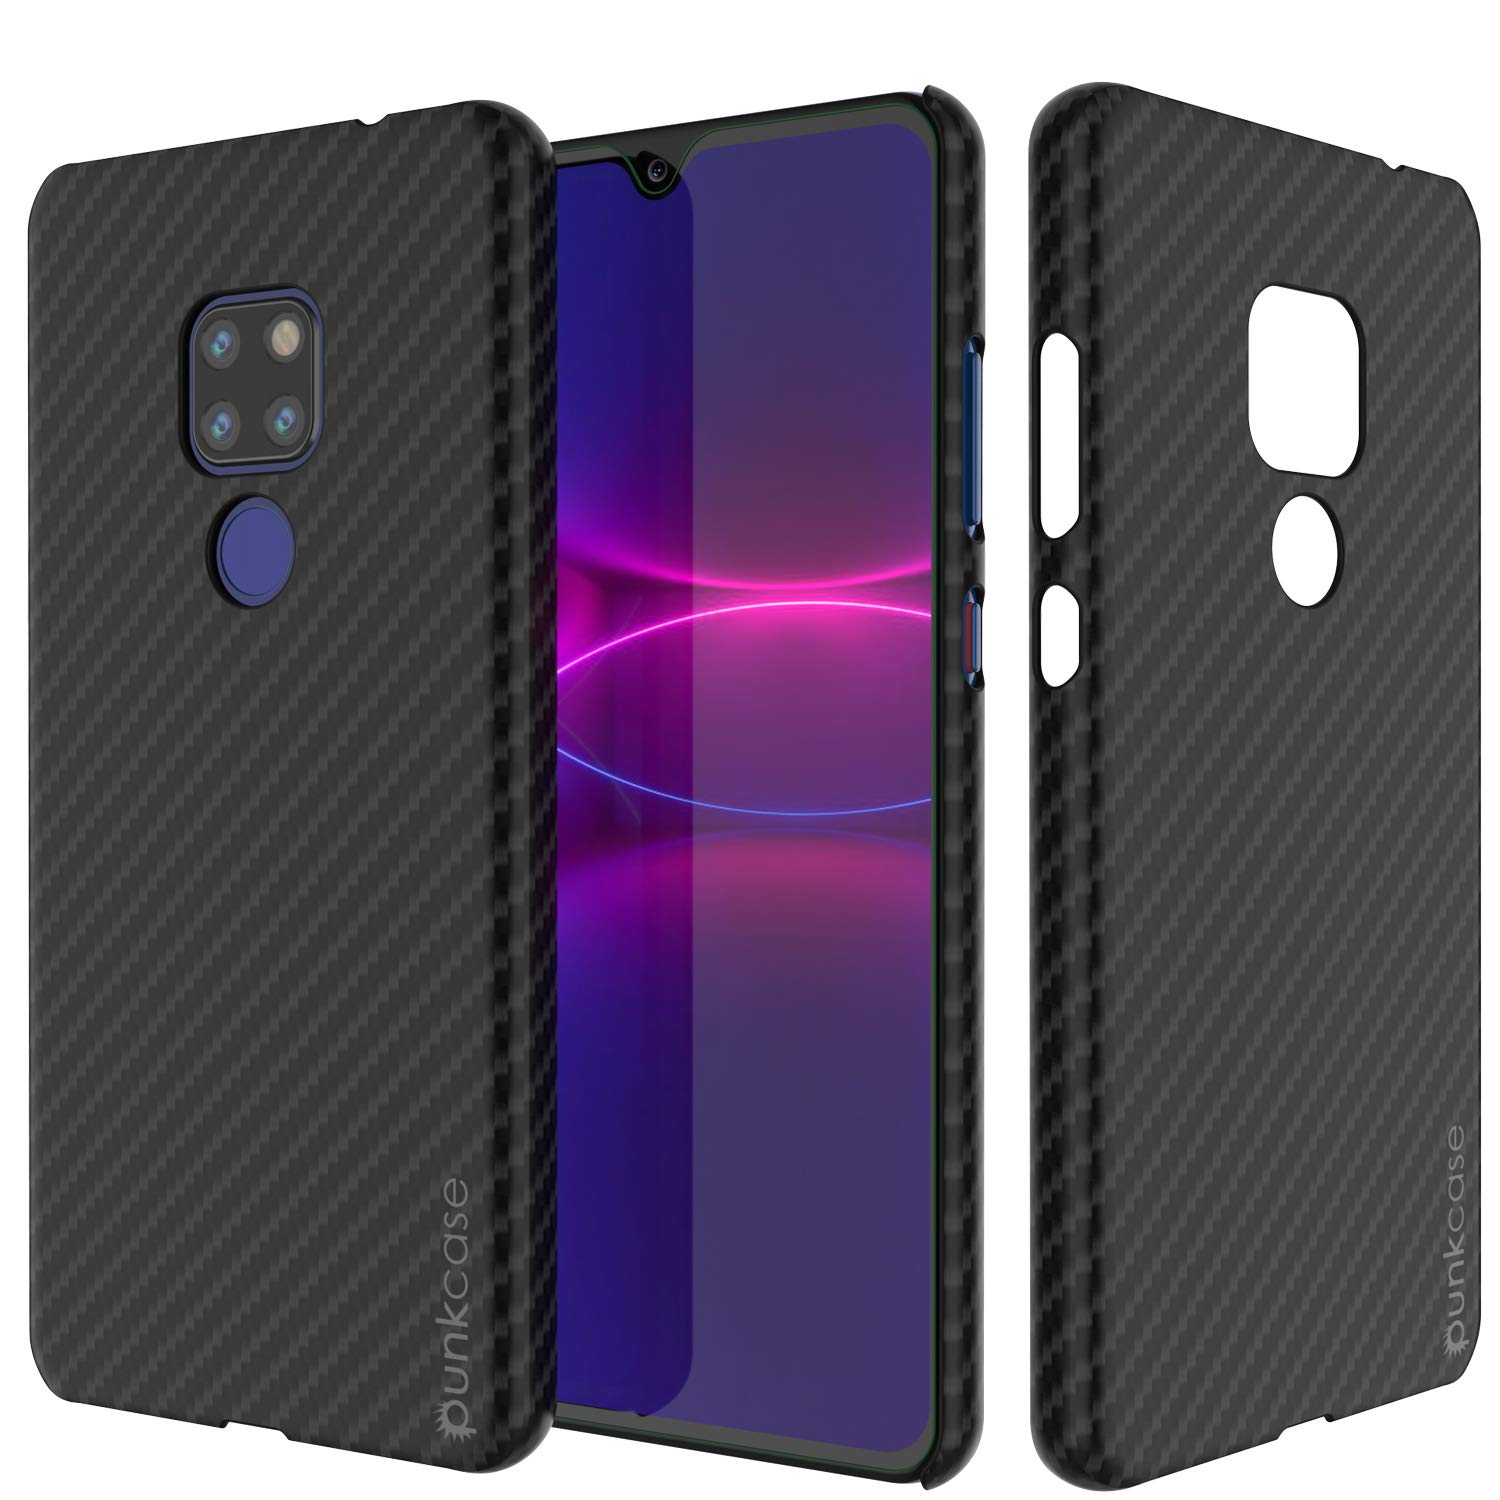 Huawei Mate 20 Case, Punkcase CarbonShield, Heavy Duty [Black] Cover